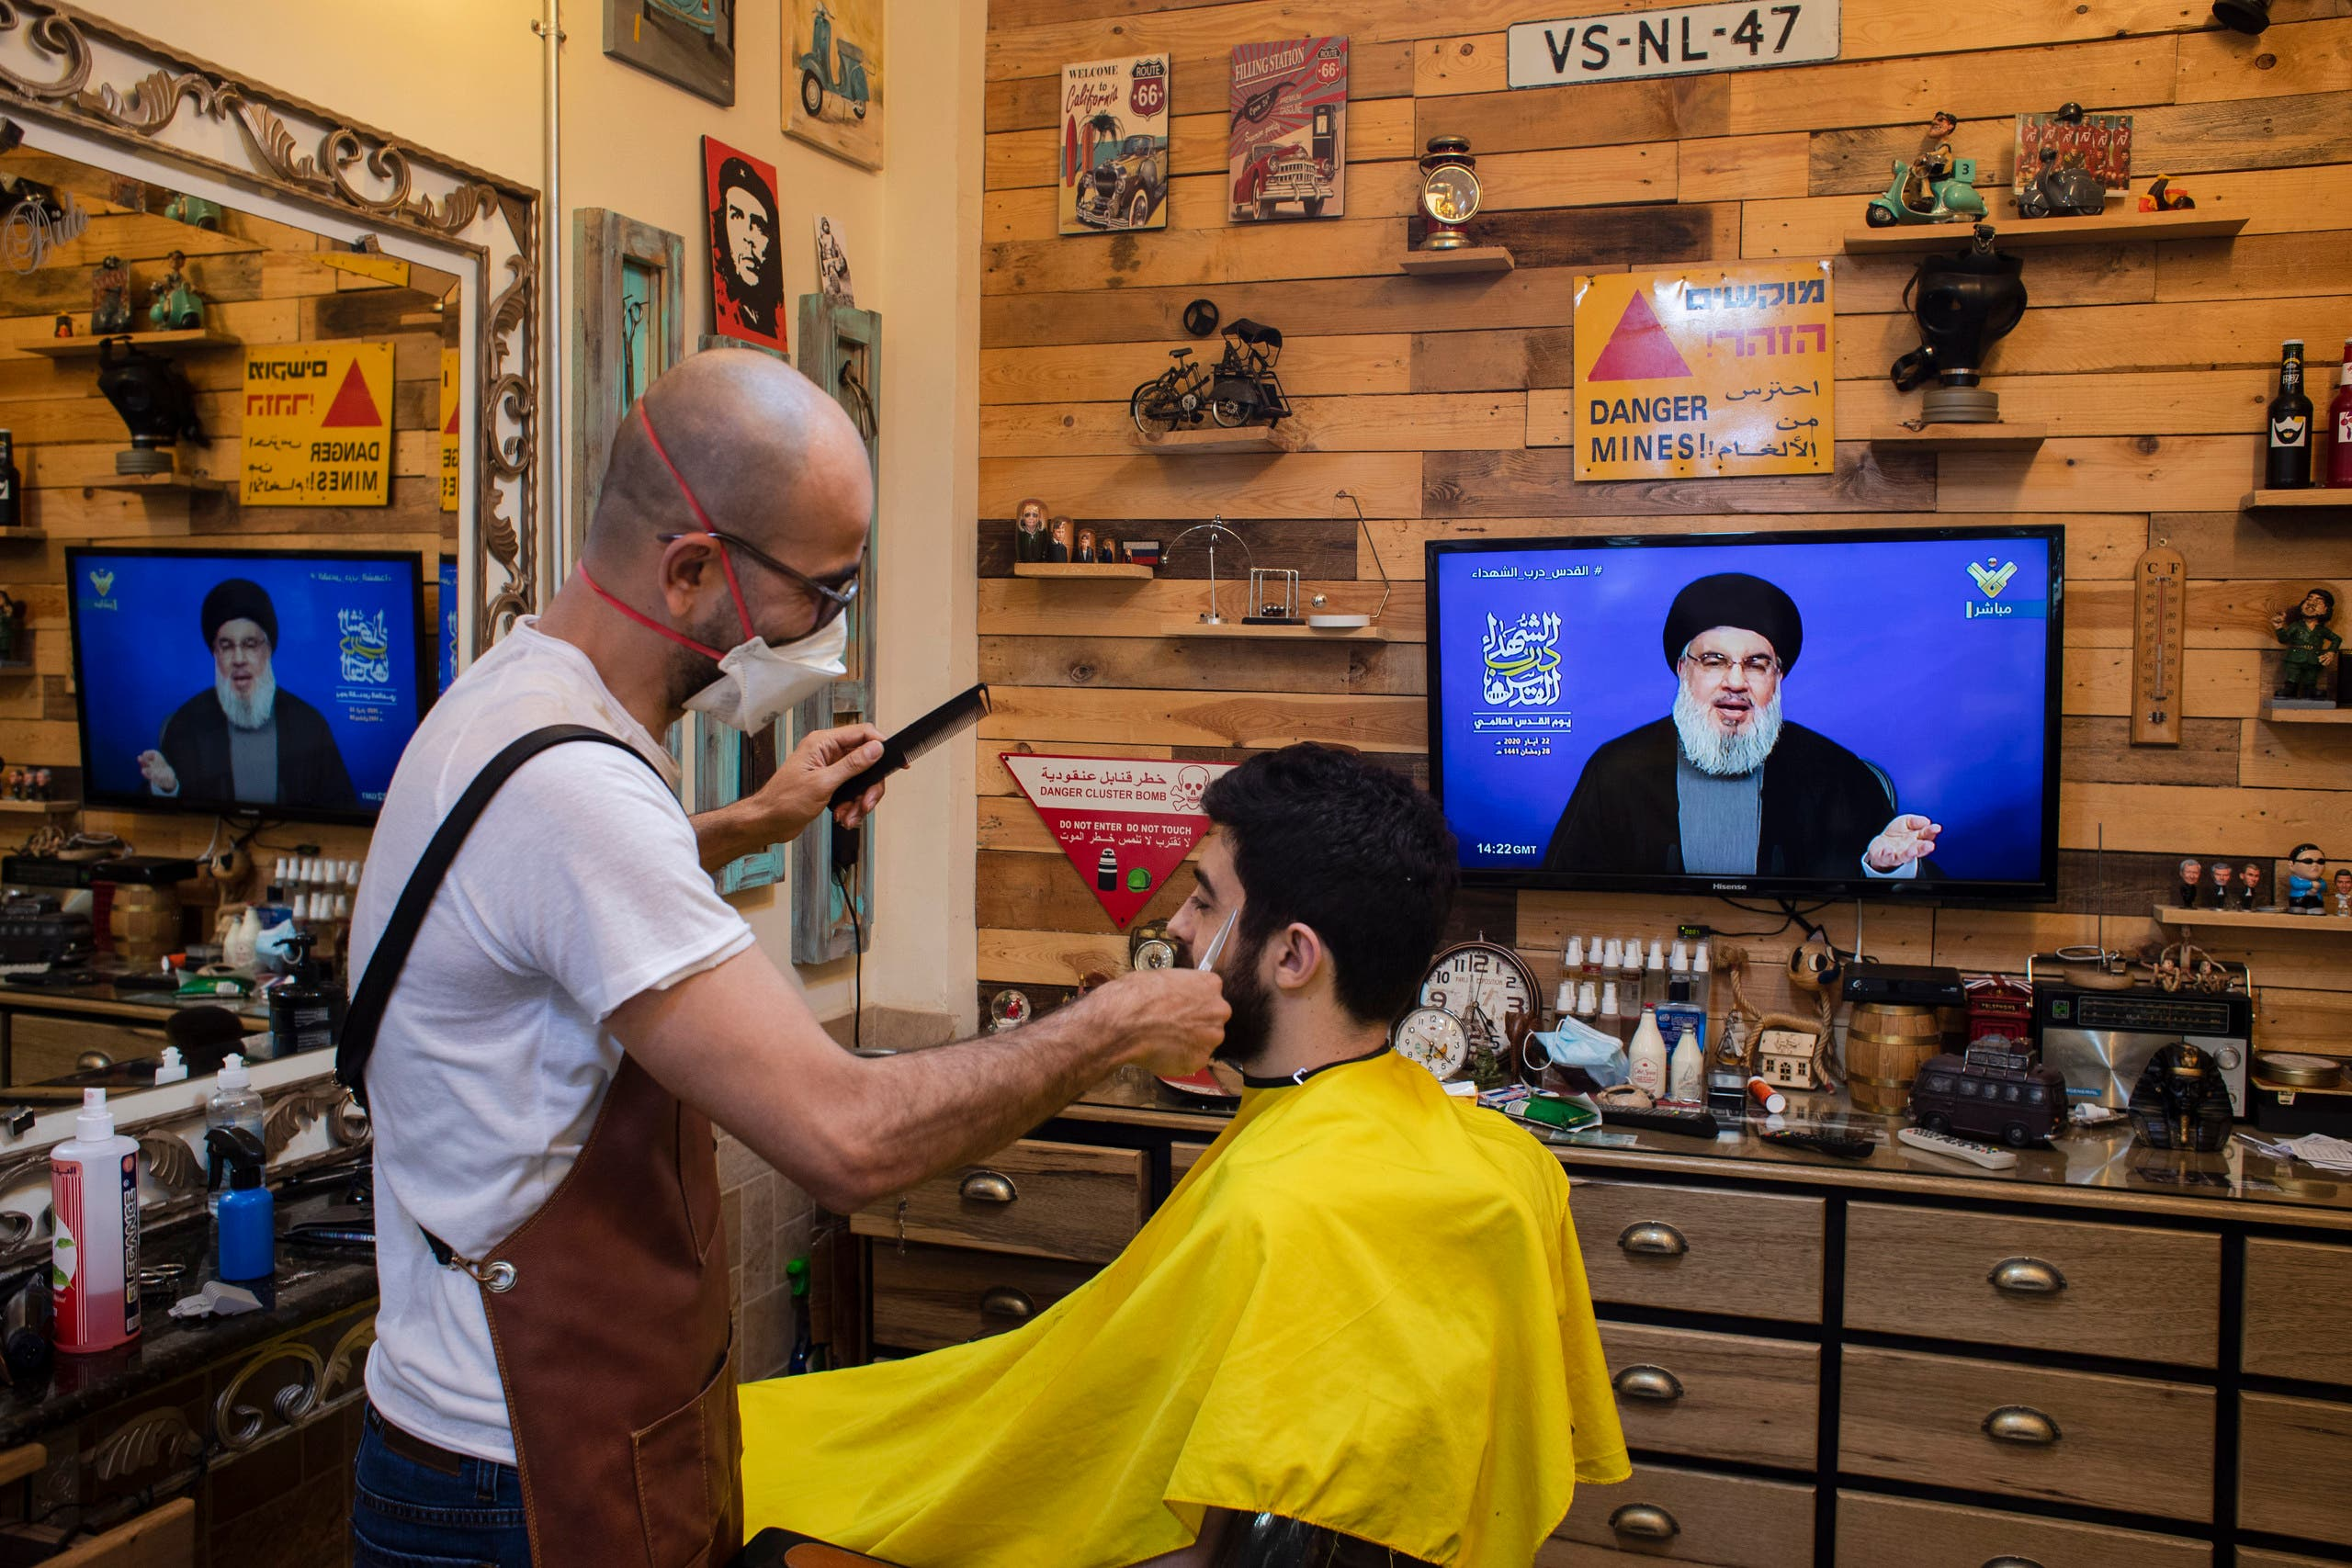 A barber wearing a mask listens to a speech by Hezbollah leader Hassan Nasrallah in the southern suburb of Beirut, Lebanon, Friday, May 22, 2020. (AP)